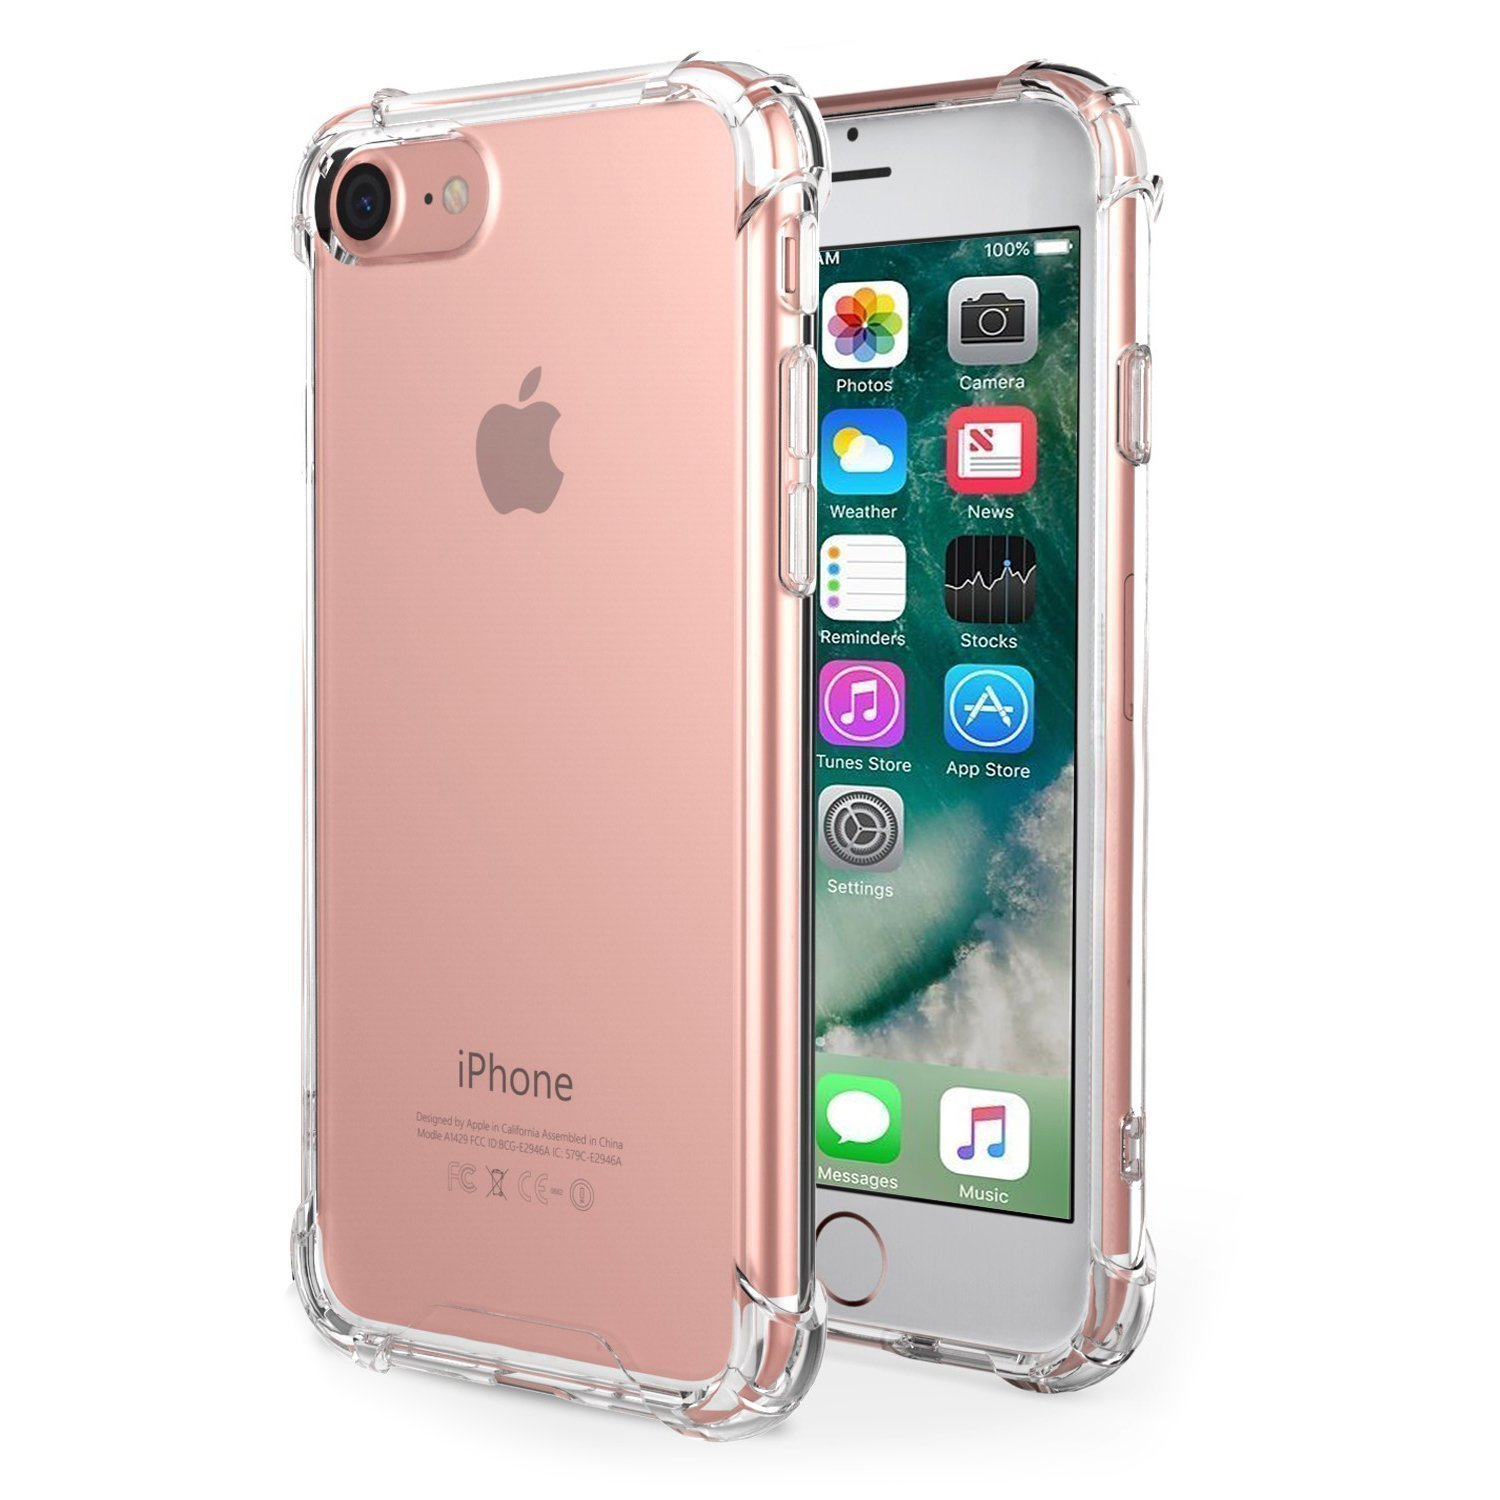 iPhone 6s case, iPhone 6 Case,Yoyamo iPhone 6s Crystal Clear Case Cover Shock Absorption Case with Soft TPU Gel Bumper